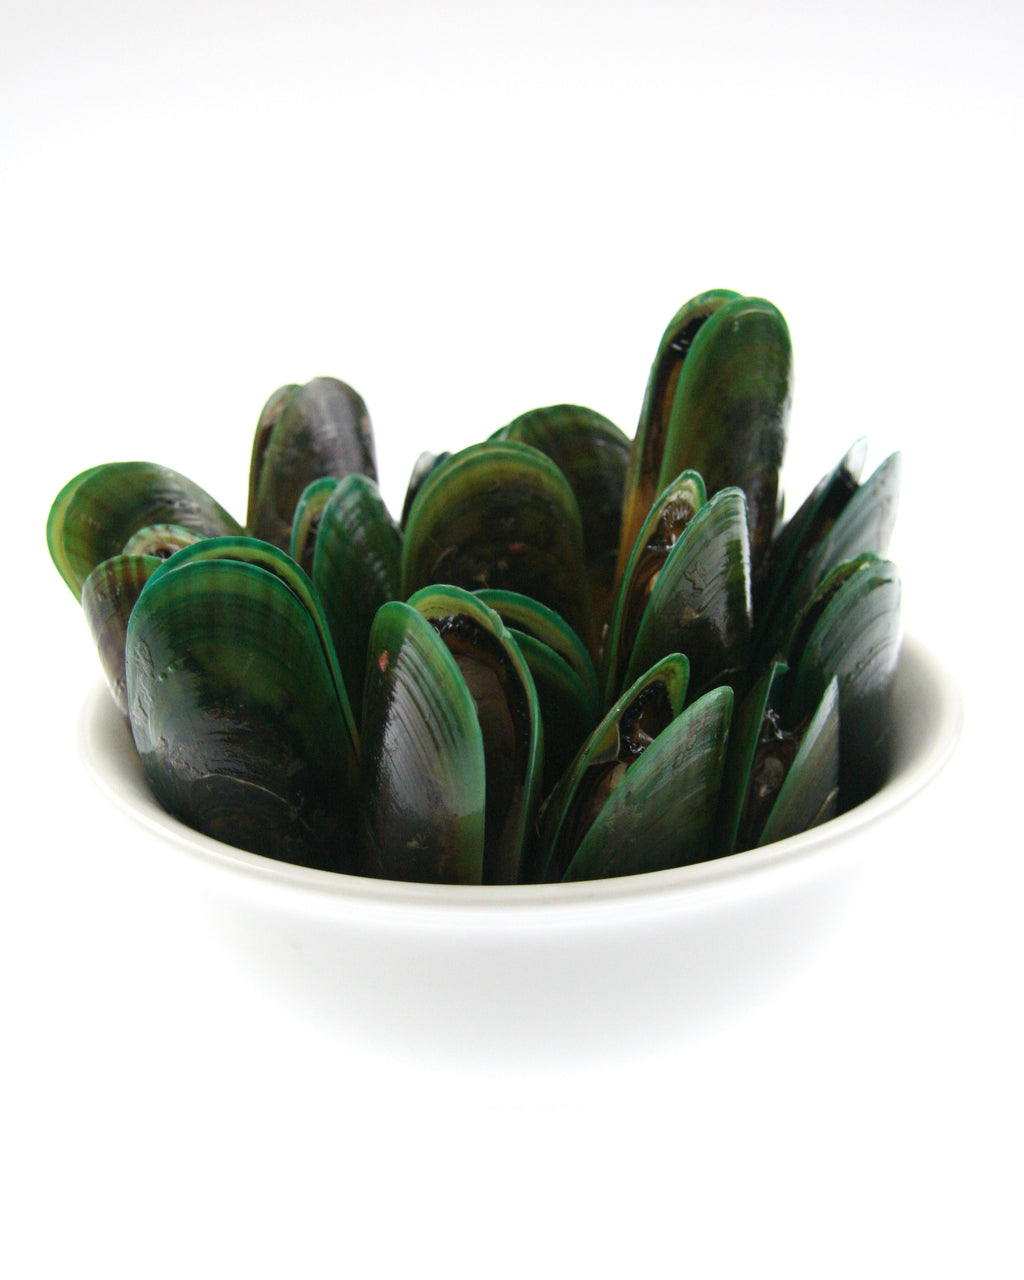 Greenshell™ Whole Mussels 10kg Ctn